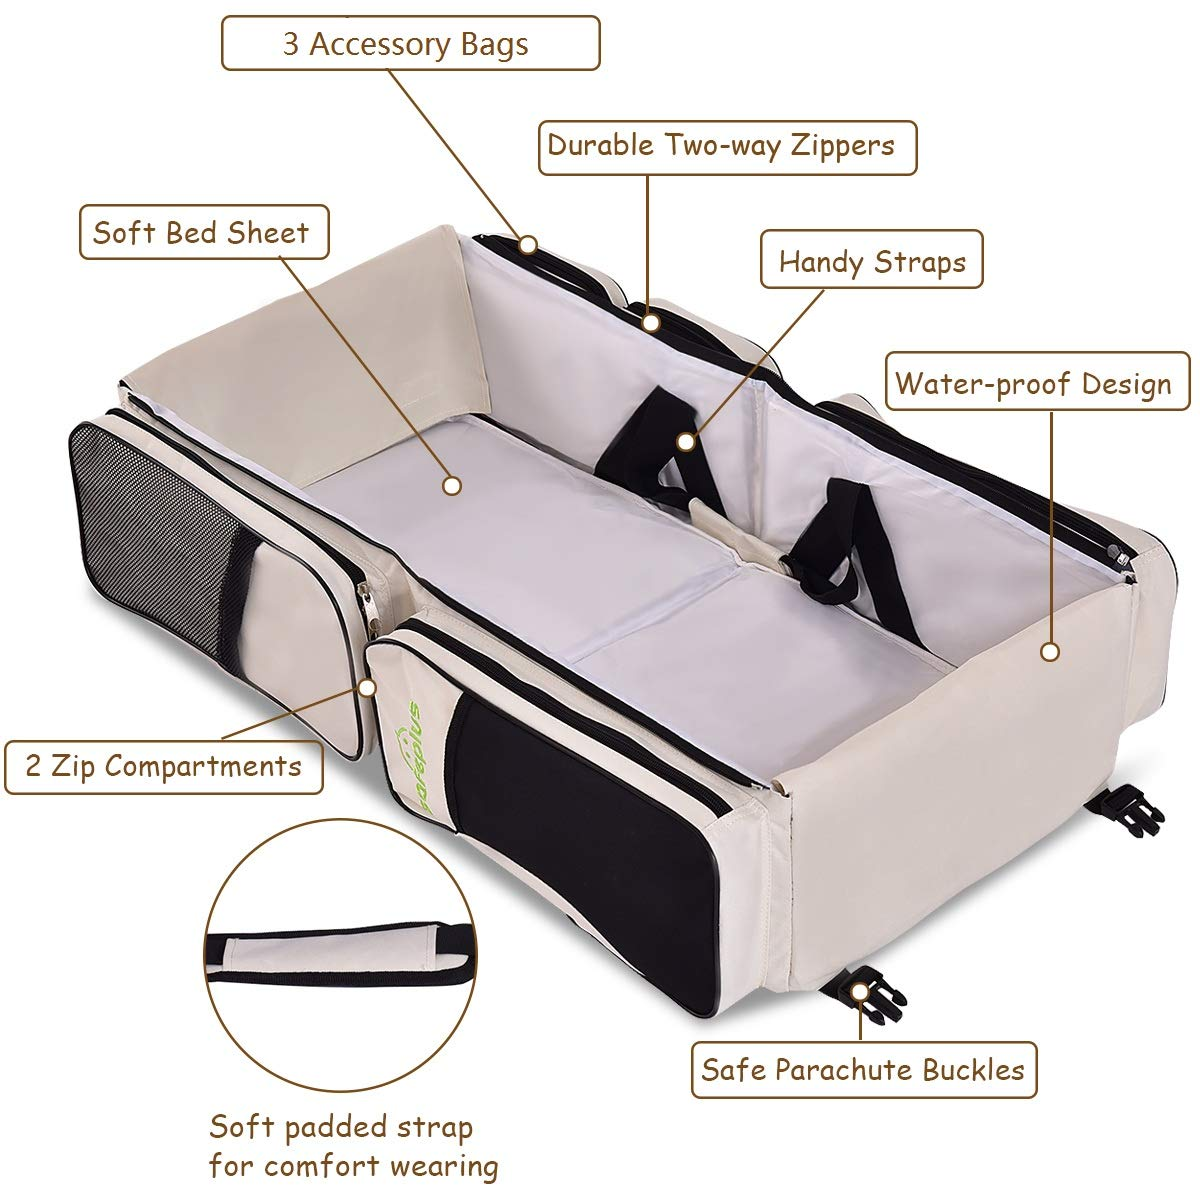 HAPPYGRILL 3 in 1 Baby Bassinet Diaper Bag, Waterproof Oxford Portable Bassinet, Travel Changing Station with Fitted Sheet, Baby Traveling Bag Mother's Bag(Beige) by HAPPYGRILL